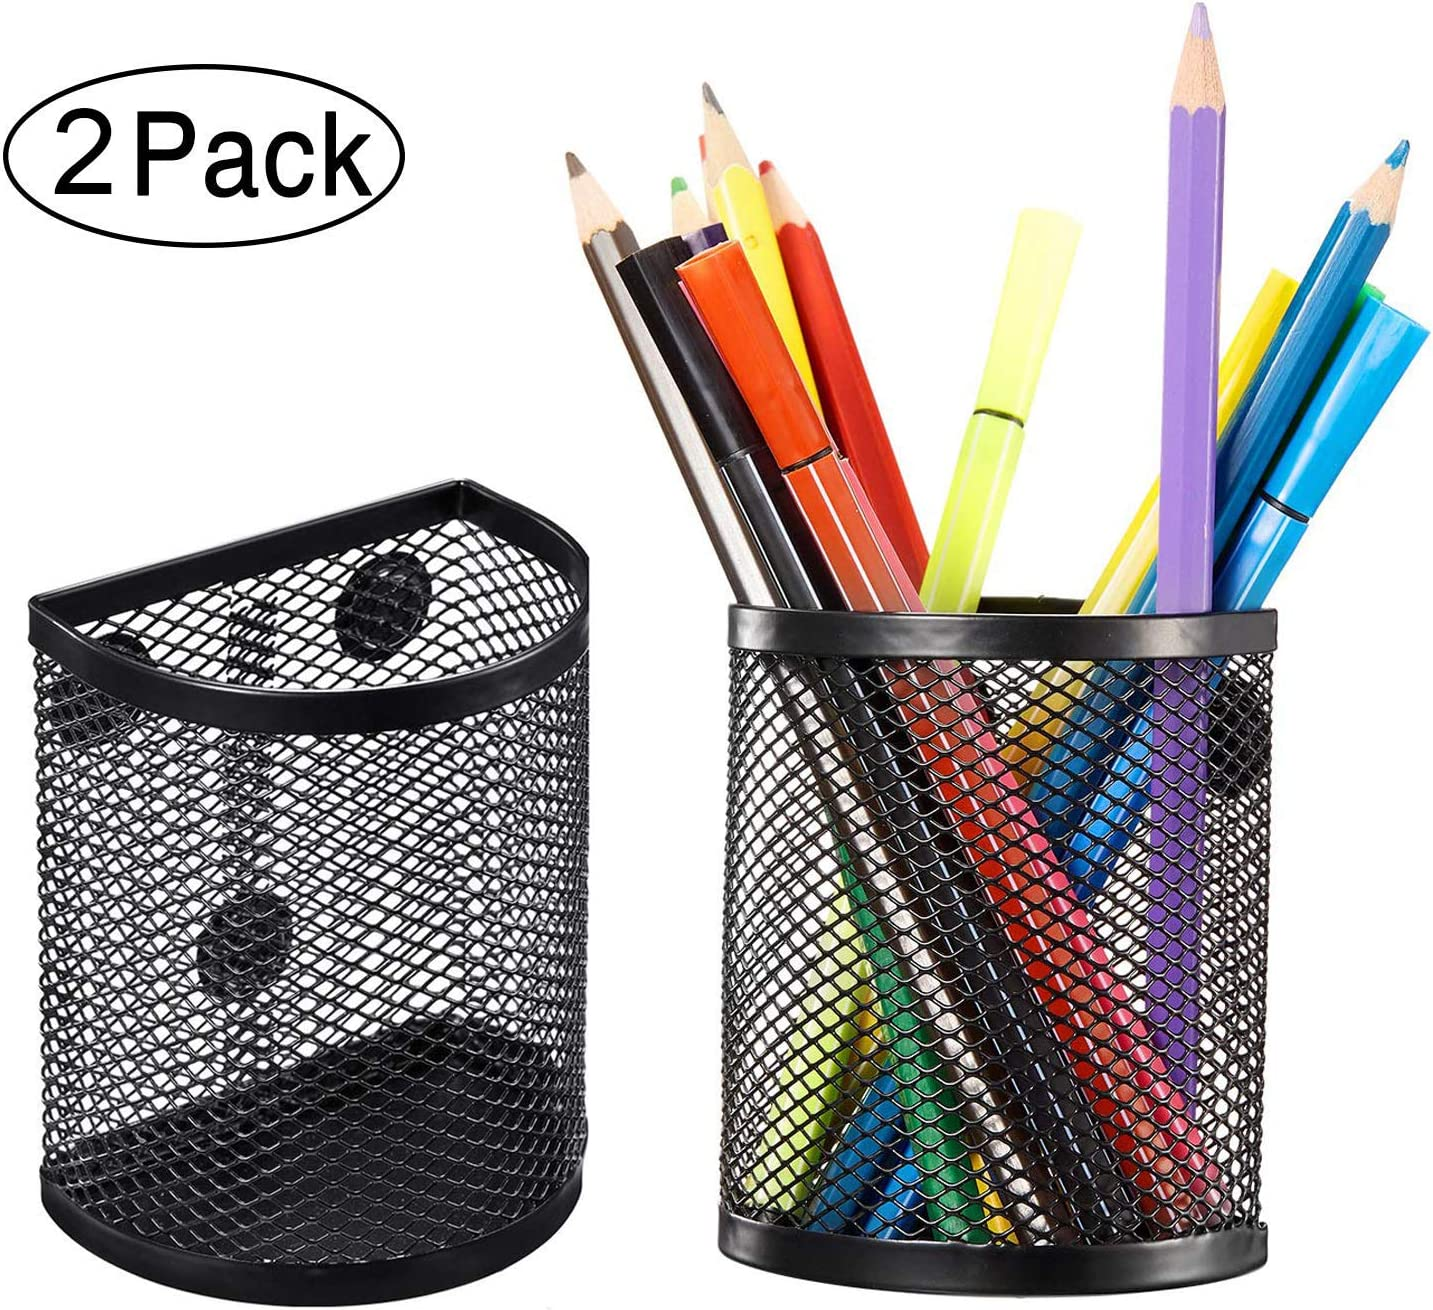 Magnetic Pencil Holder, Mesh Storage Baskets with Magnets to Hold Whiteboard, Locker Accessories, Black (2)